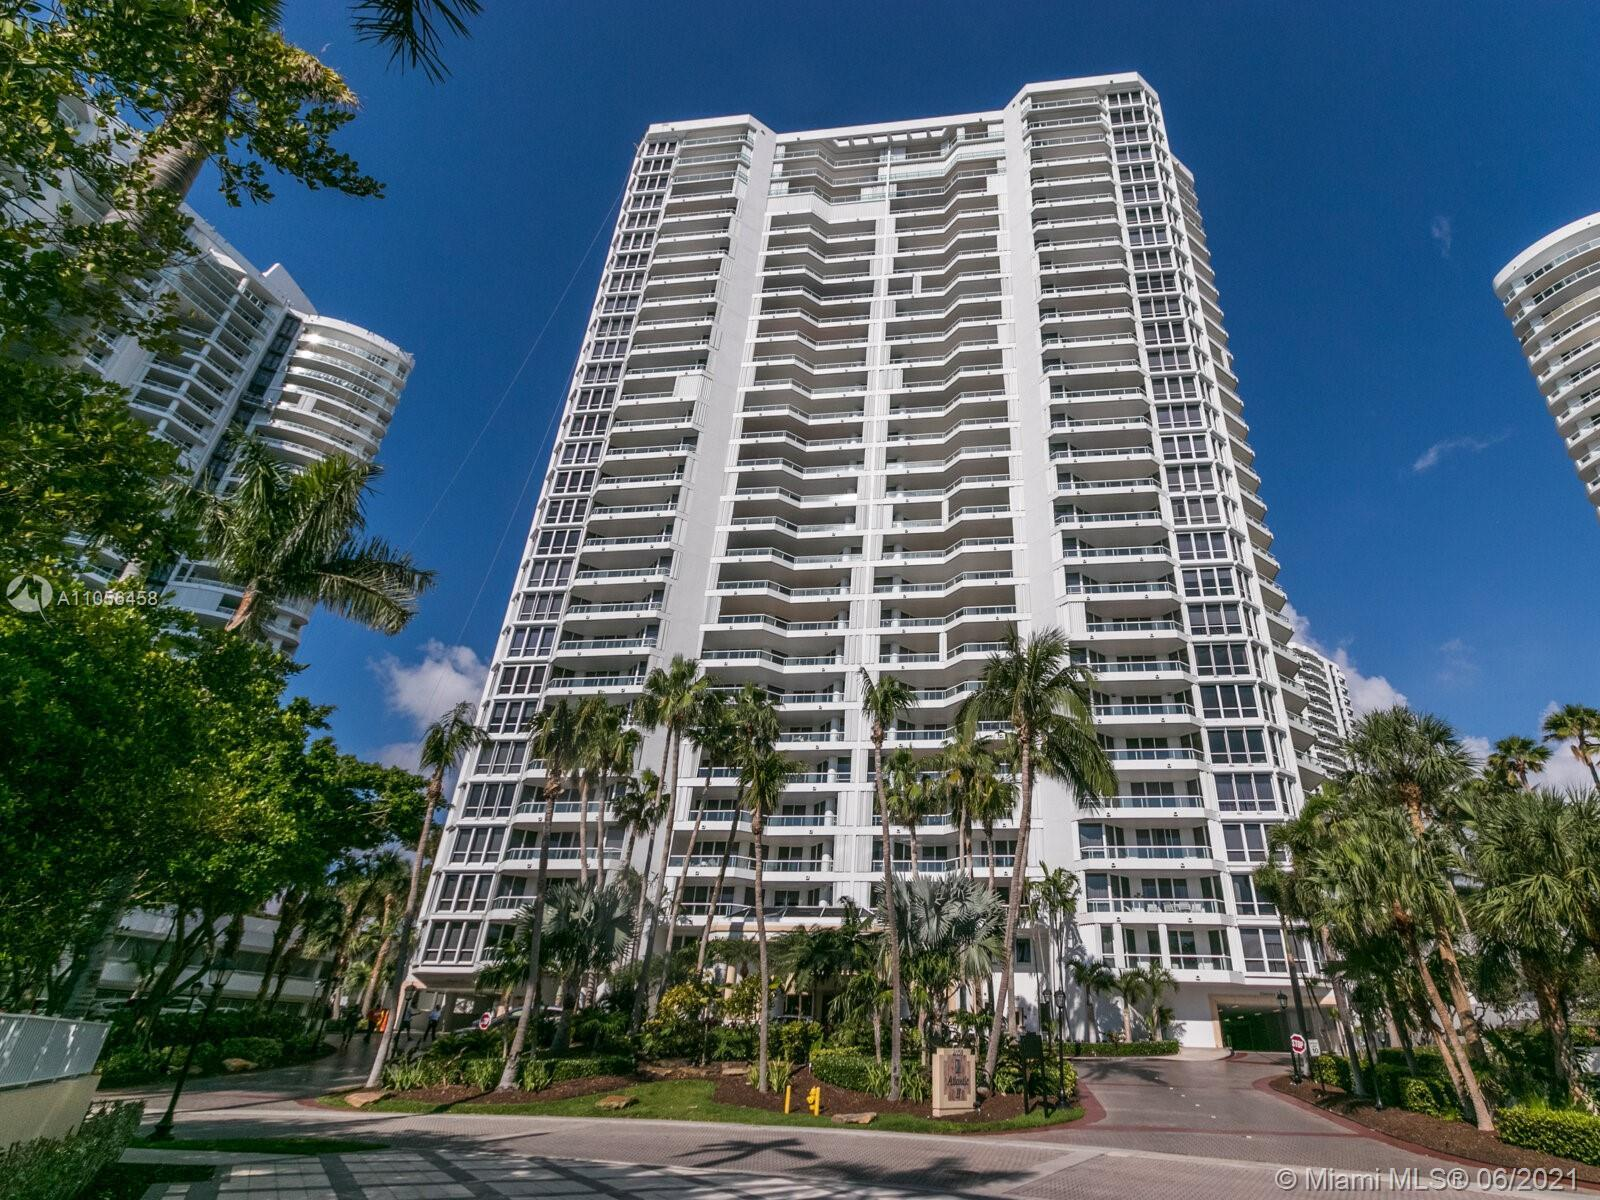 3 BEDROOM/DEN+3 FULL BATHROOMS DIRECT OCEAN AND INTRACOASTAL VIEW. MARBLE FLOOR IN LIVING AREA WITH